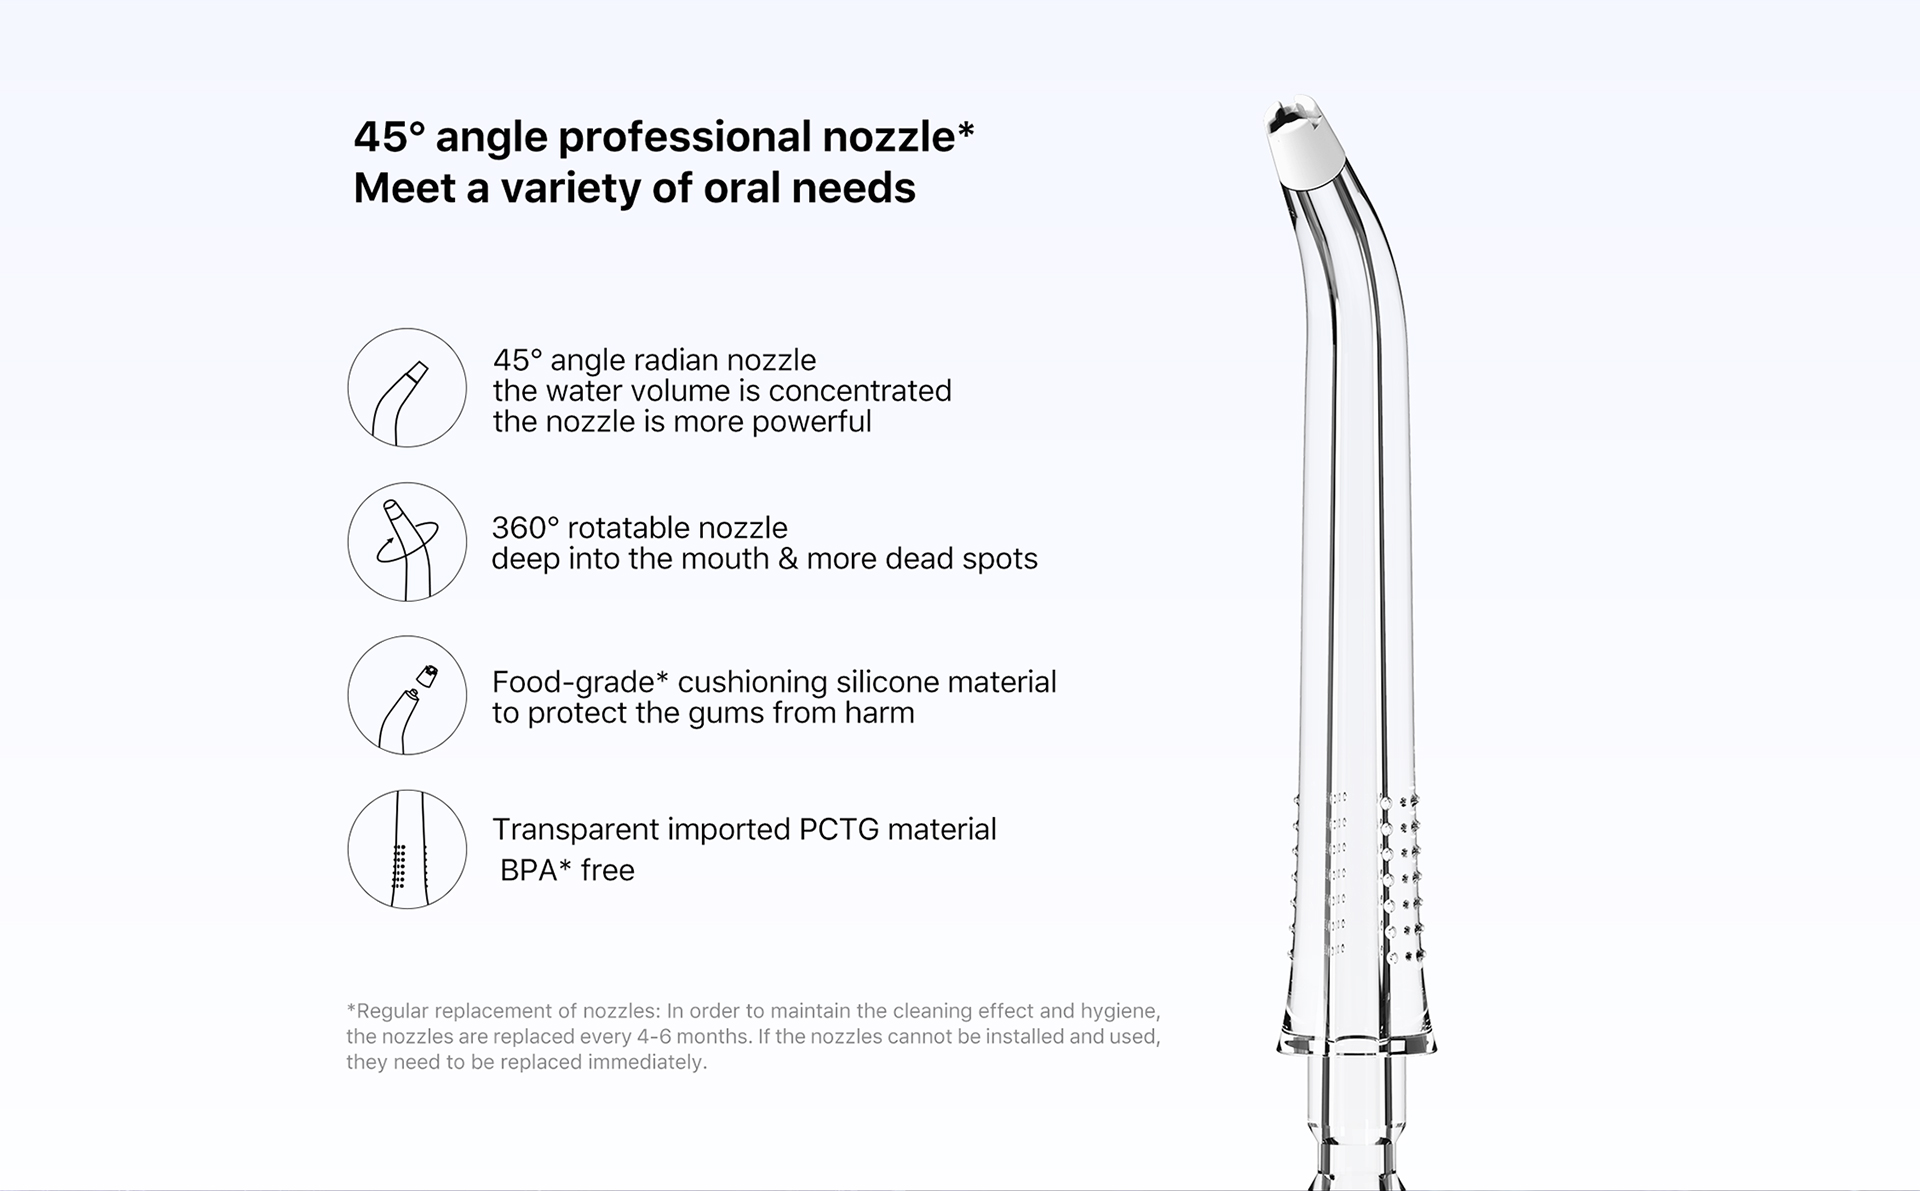 45 angle radian nozzle the water volume is concentrated the nozzle is more powerful